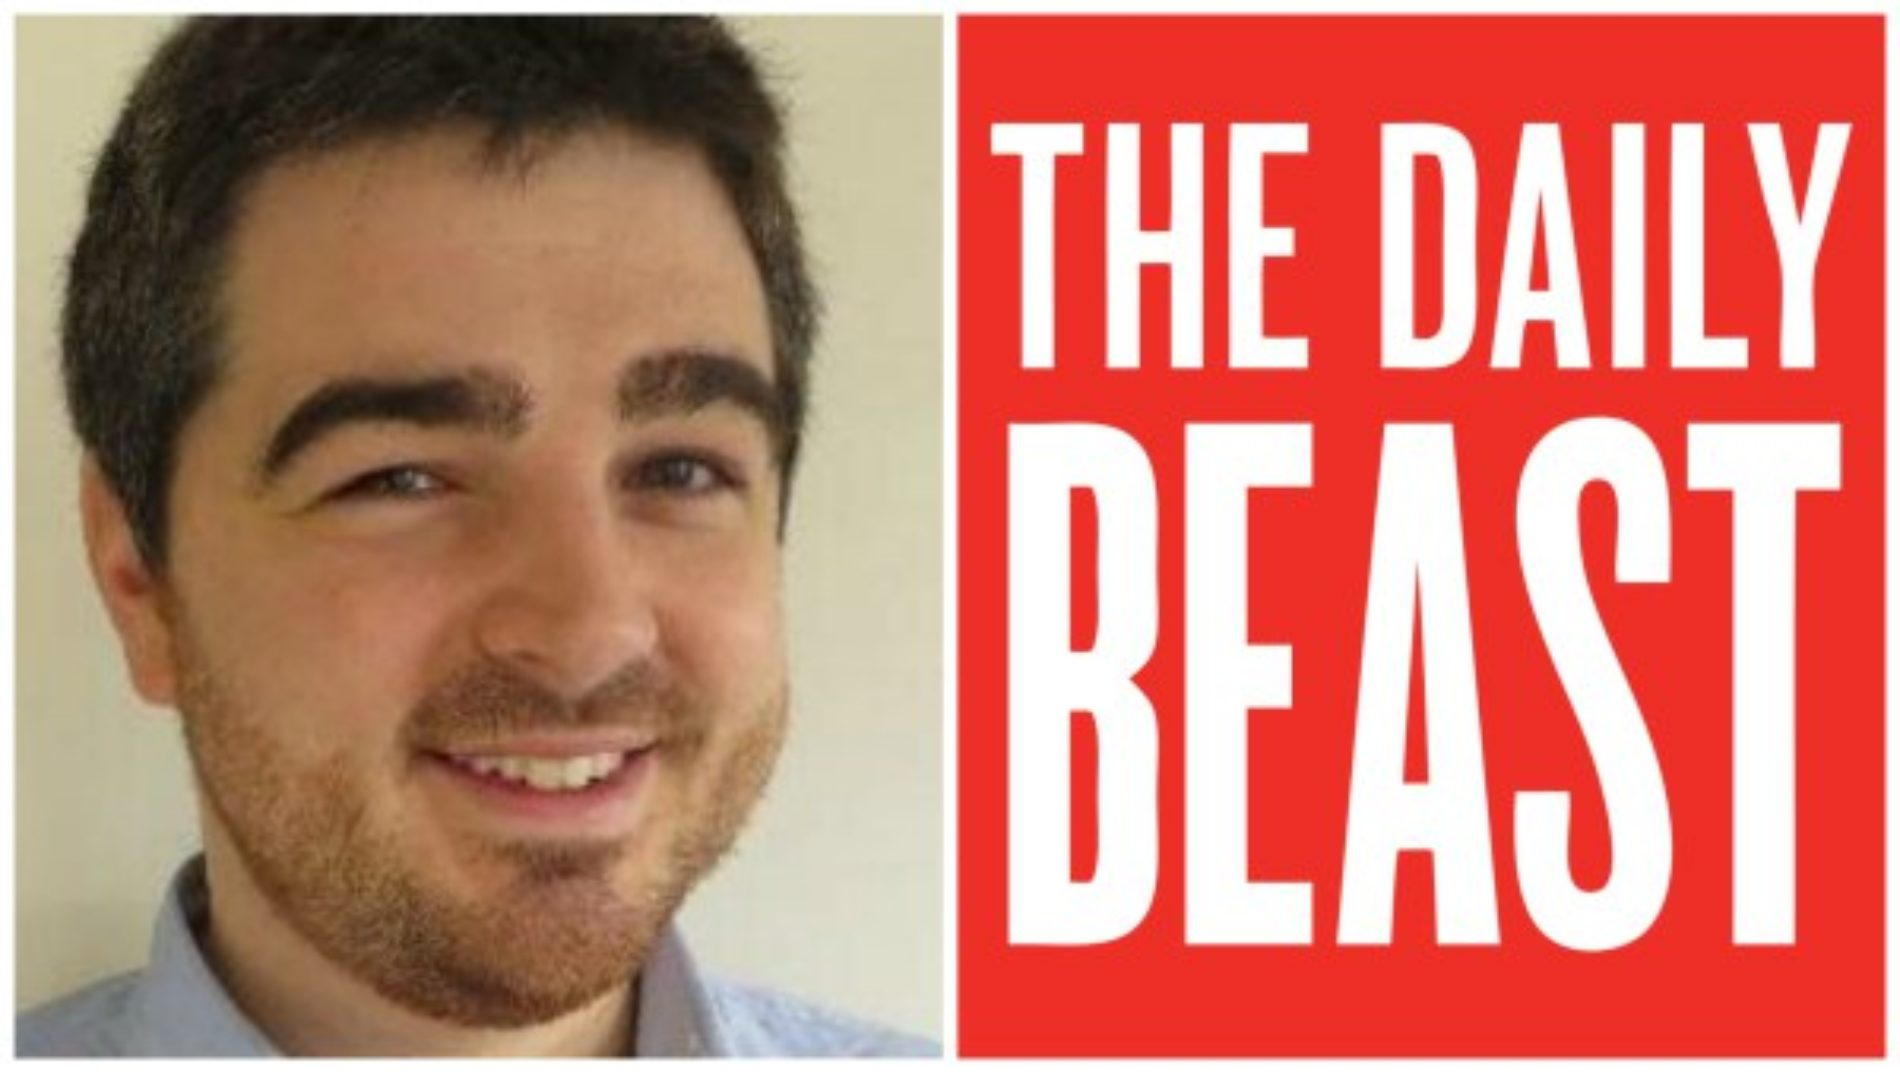 The Daily Beast finally apologizes for inflammatory article which outed gay athletes on Grindr